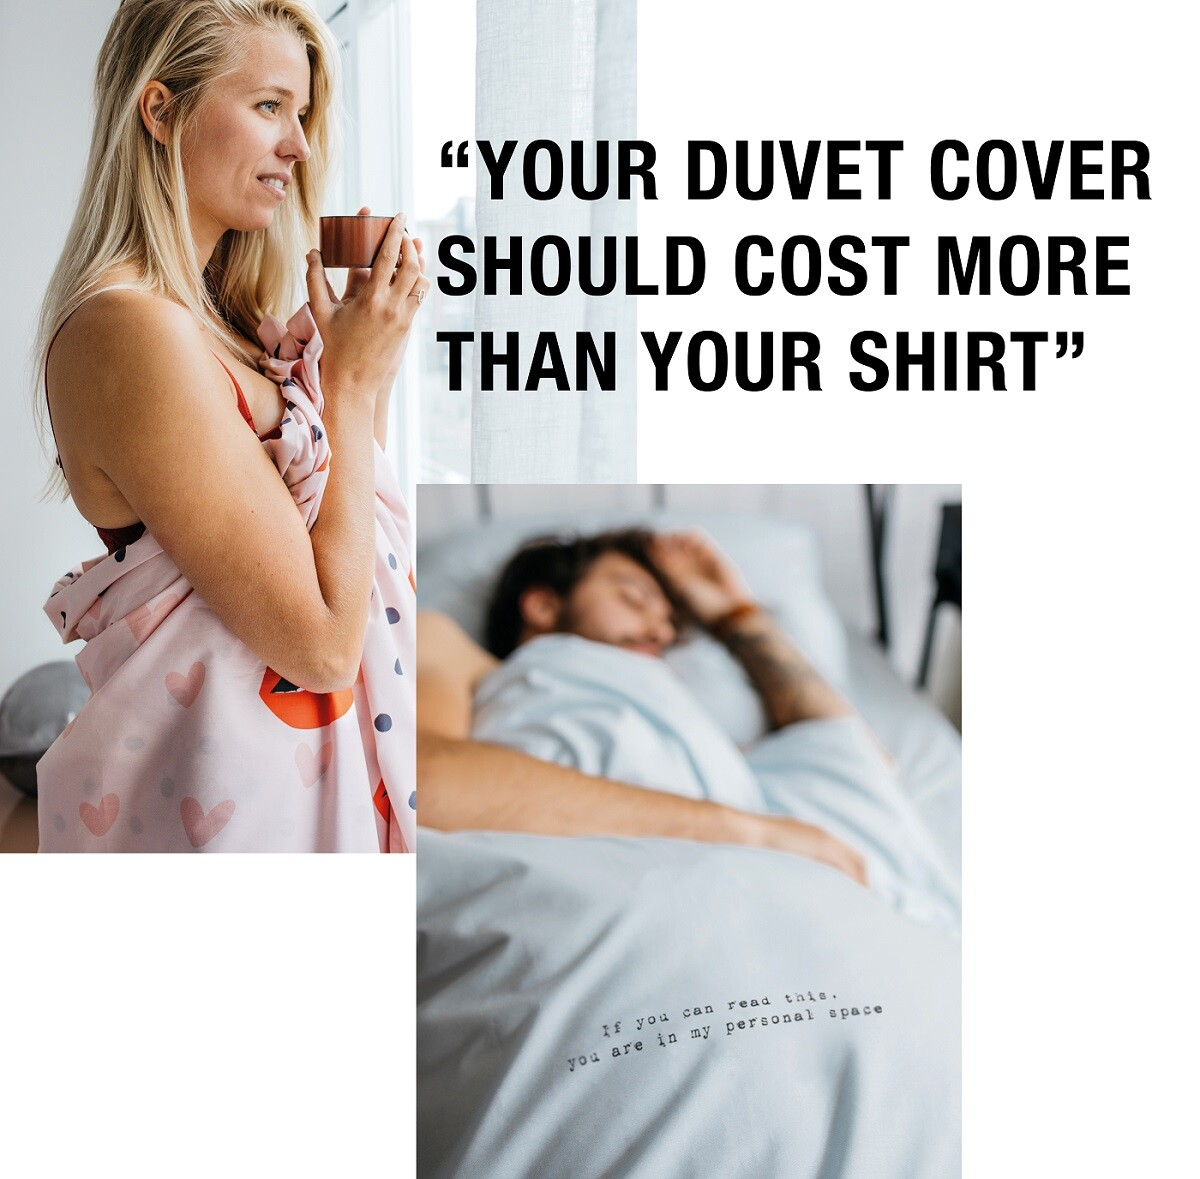 Your duvet cover should cost more than your t-shirt